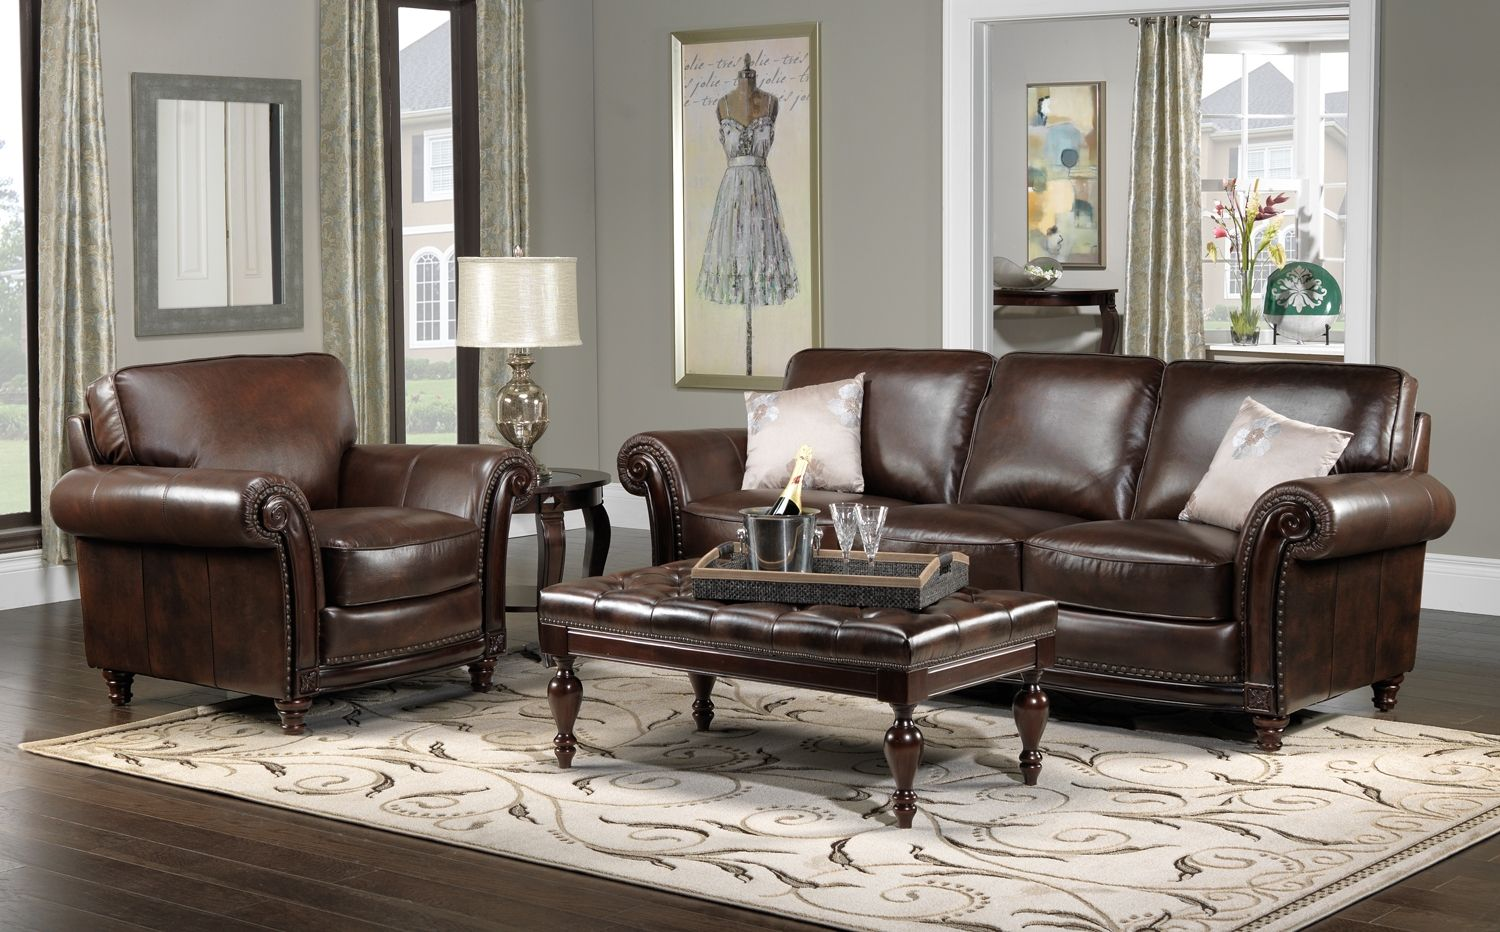 Dream house decor ideas for brown leather furniture gngkxz for Brown couch decorating ideas